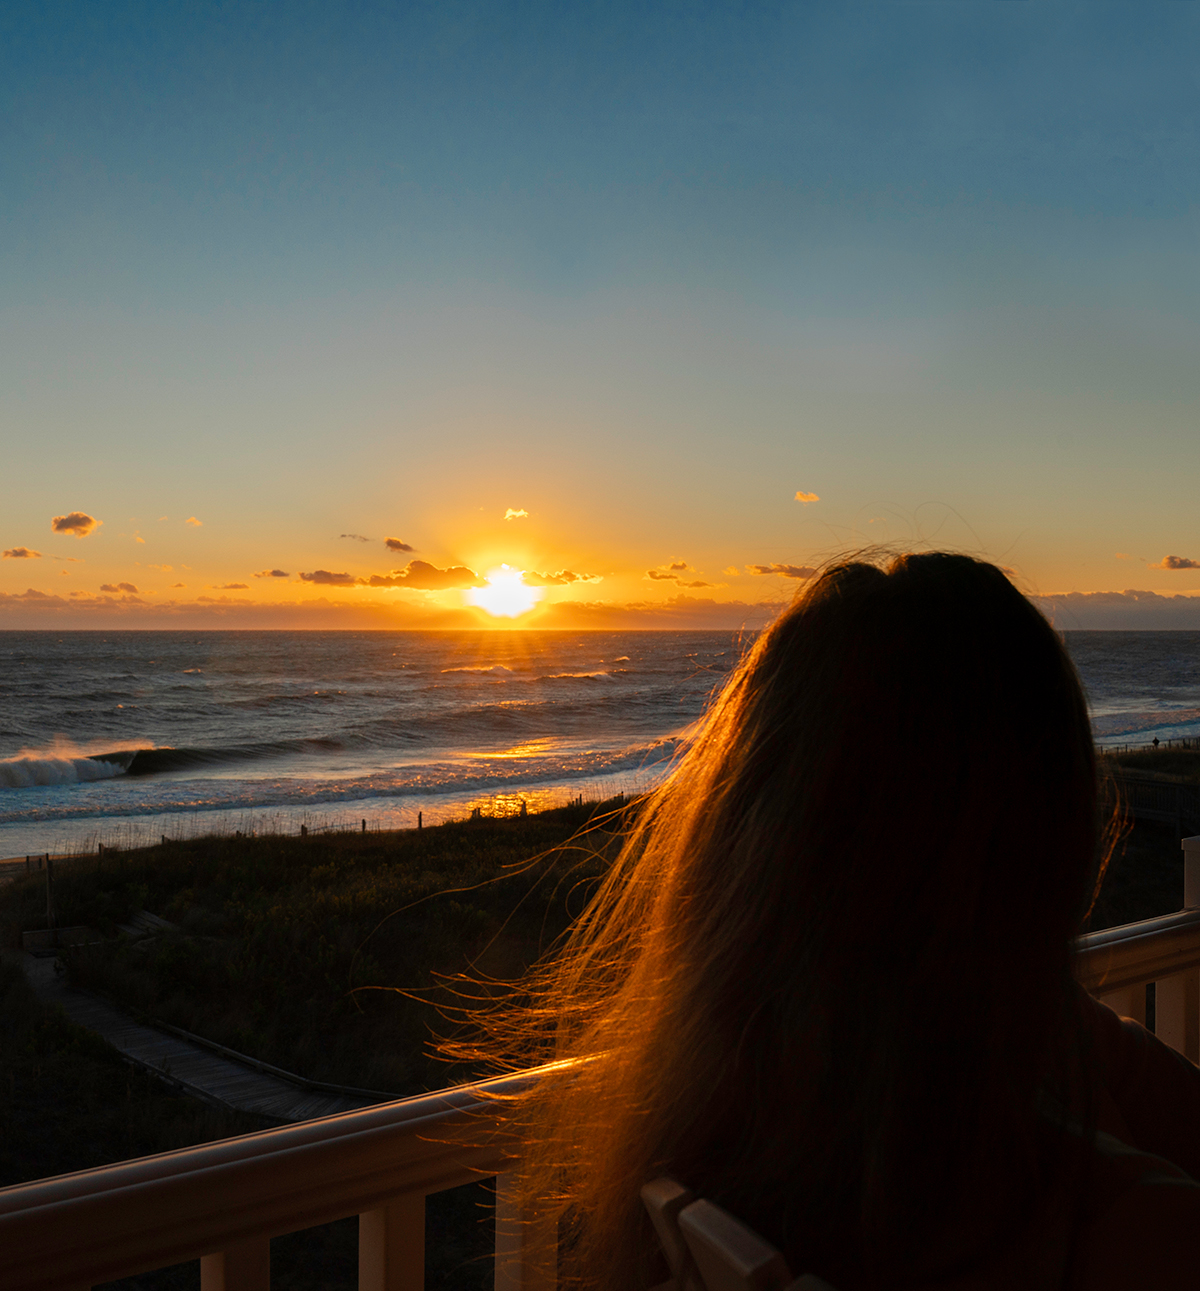 The-Sun-Rises-Over-The-Outer-Banks-North-Carolina